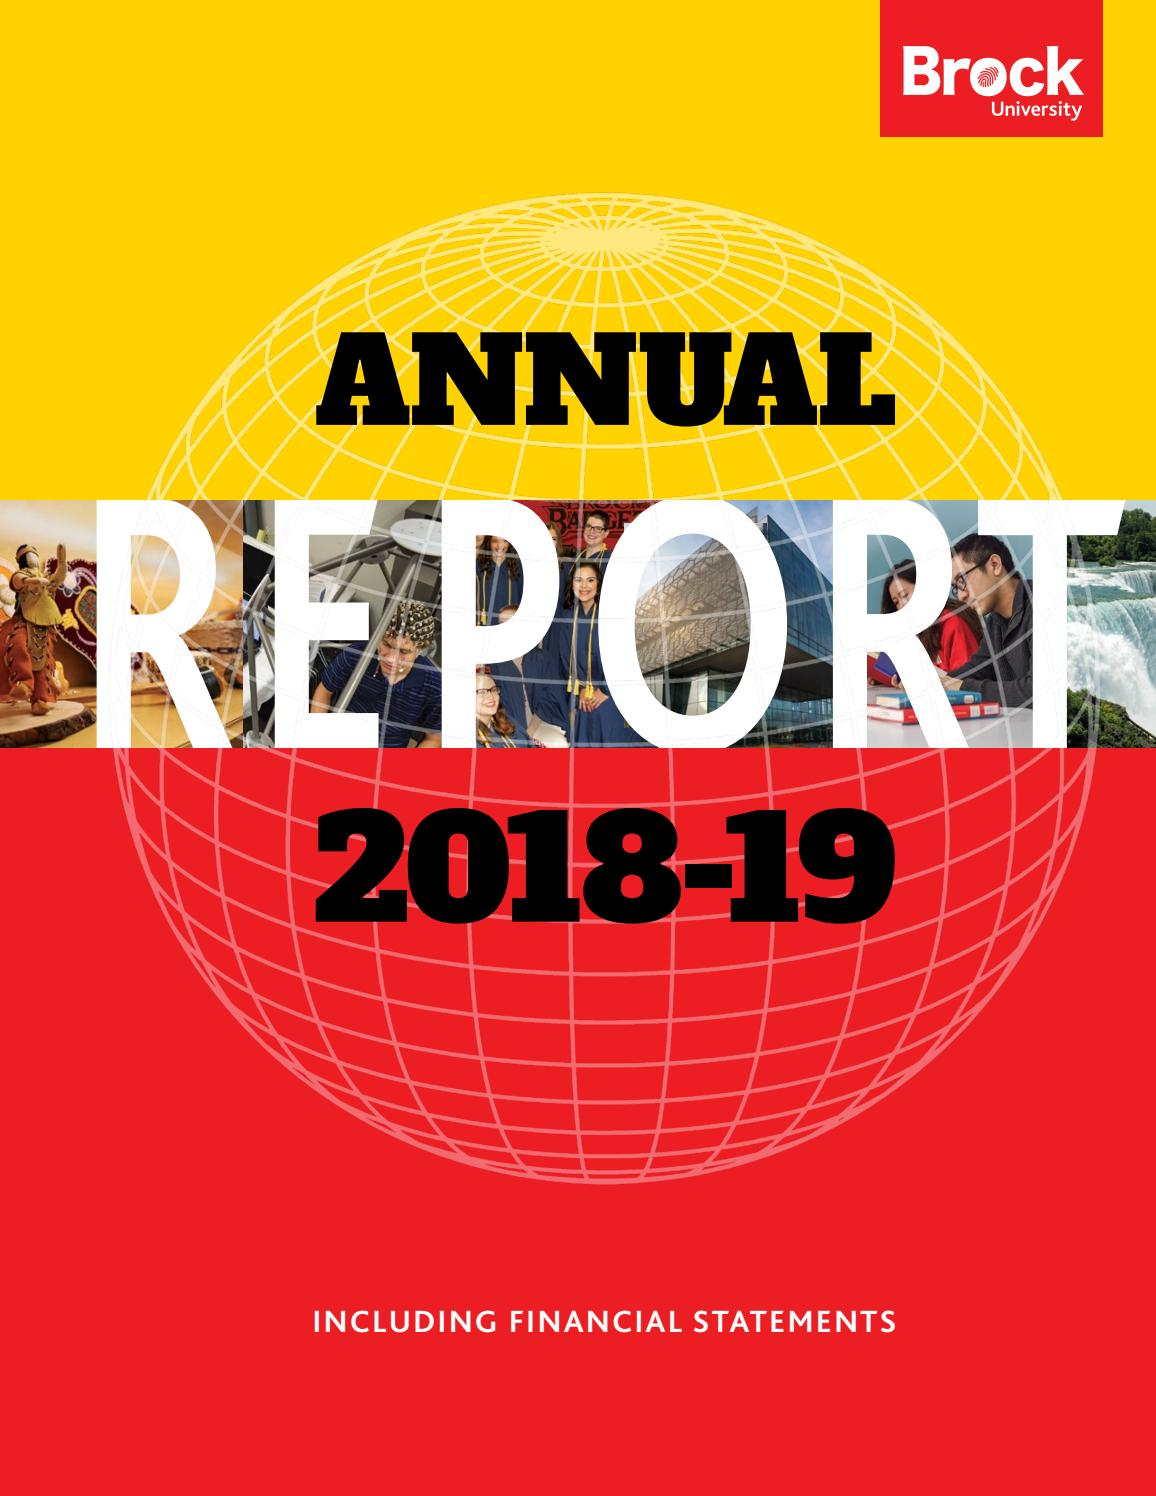 Annual Report 2018-19 by Brock University - issuu